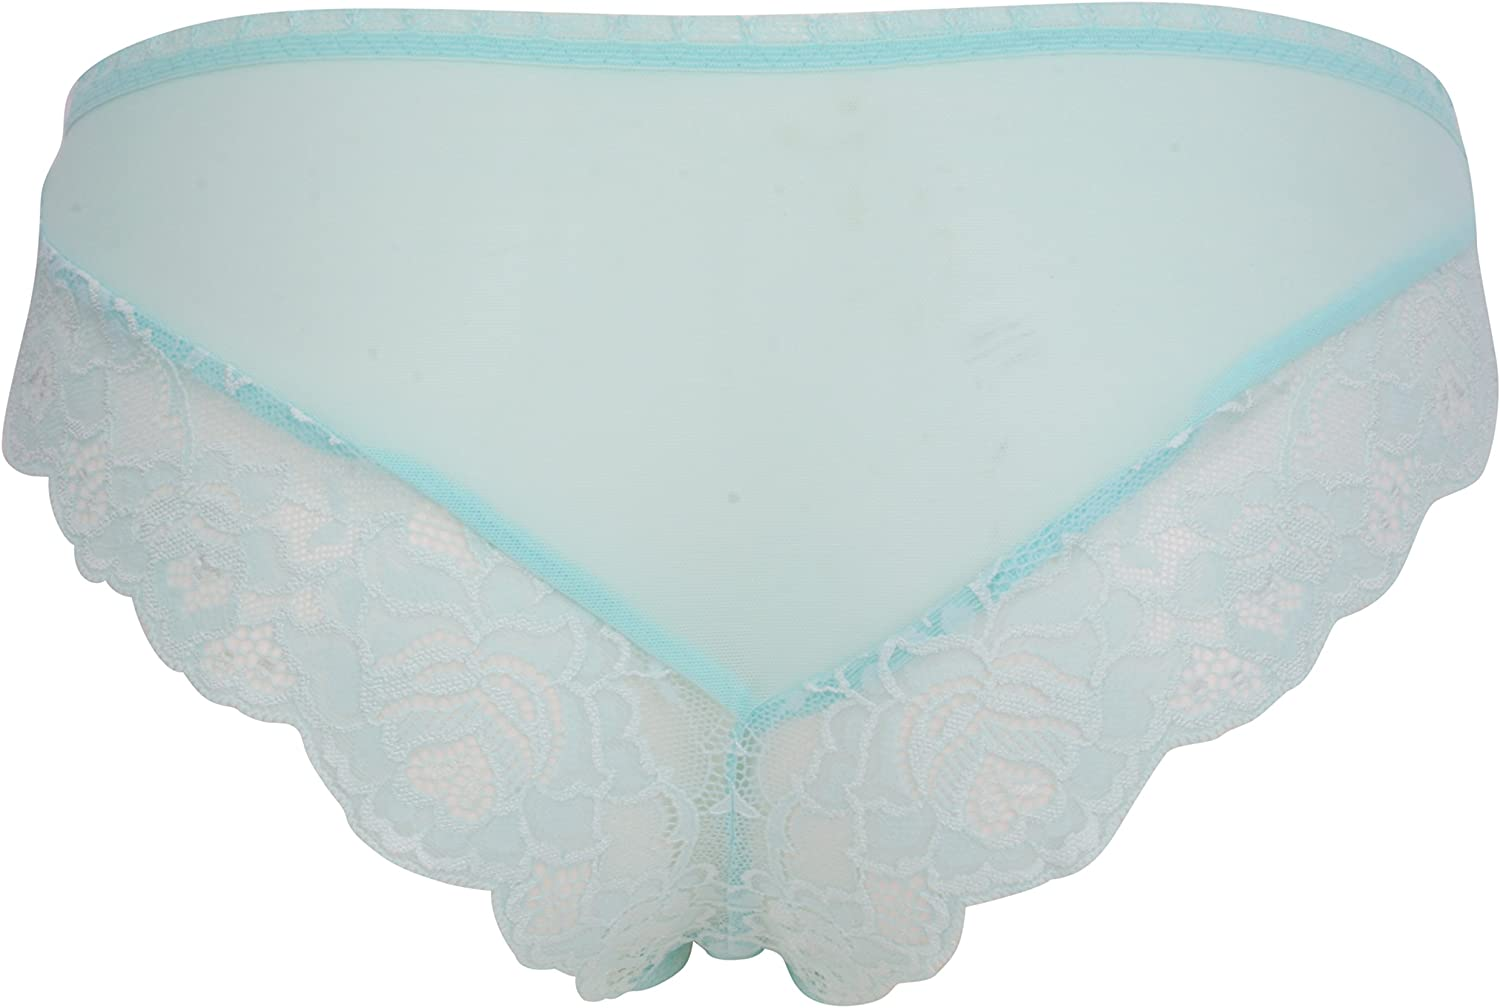 Ex-Store Maternity Lace Trimmed Brazilian Knickers Mint